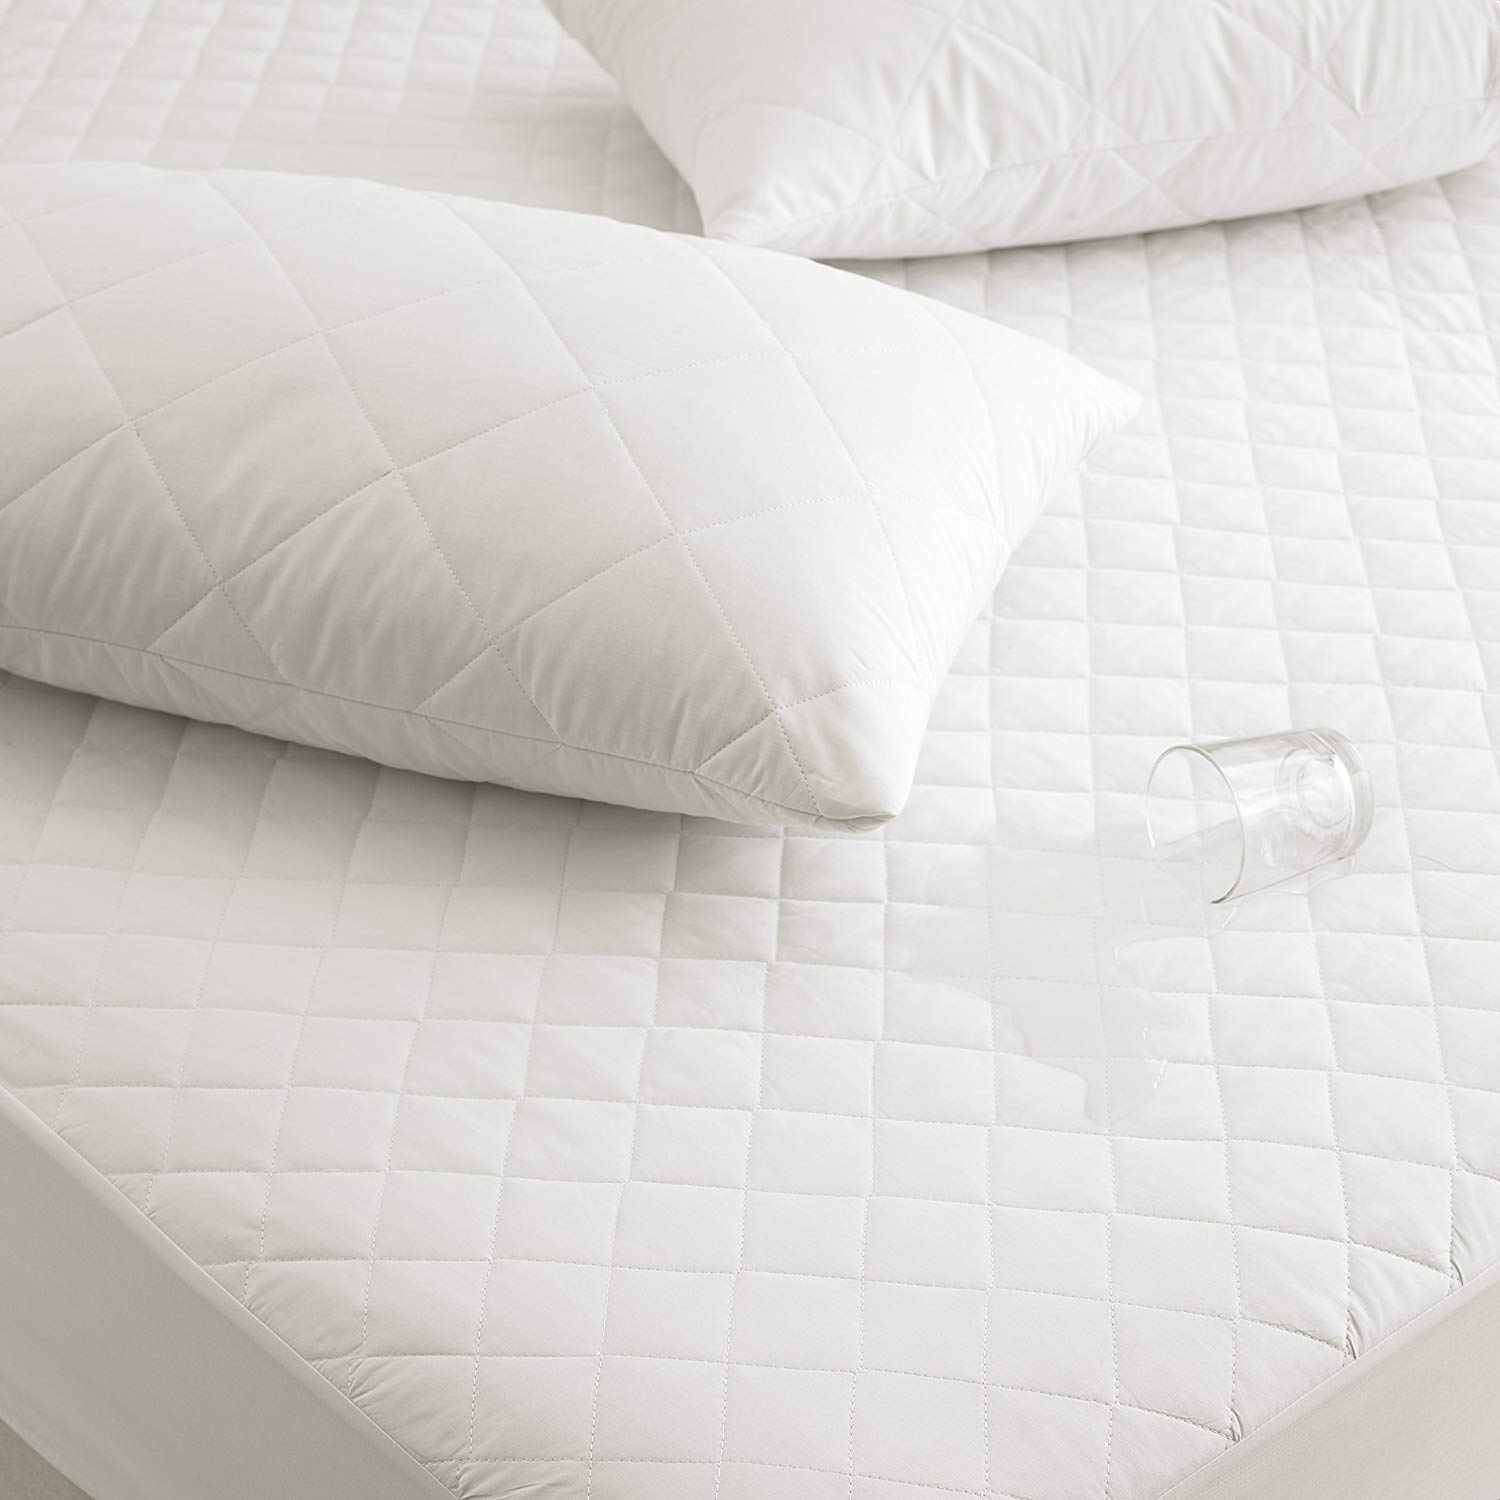 180_water_proof_quilt_mat_prot_1.jpg